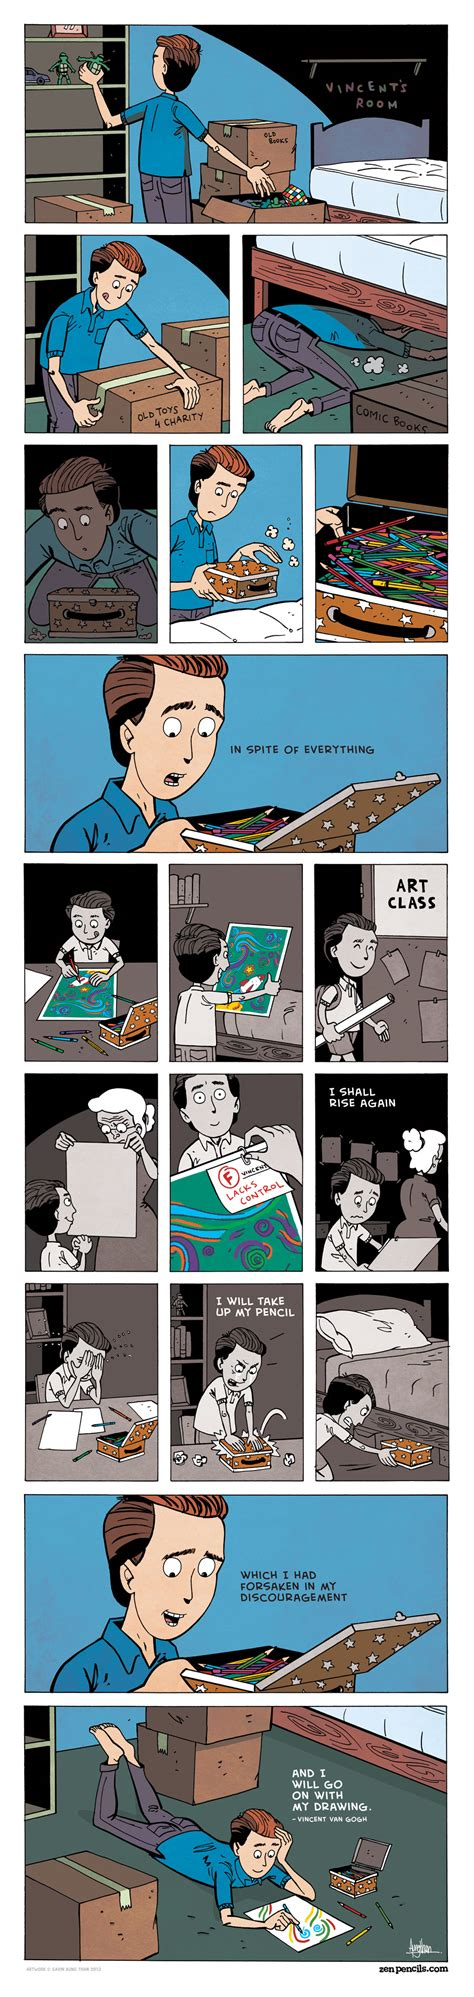 zen pencils creative struggle illustrated advice from masters of creativity books zen pencils 7 albert einstein everybody is a genius